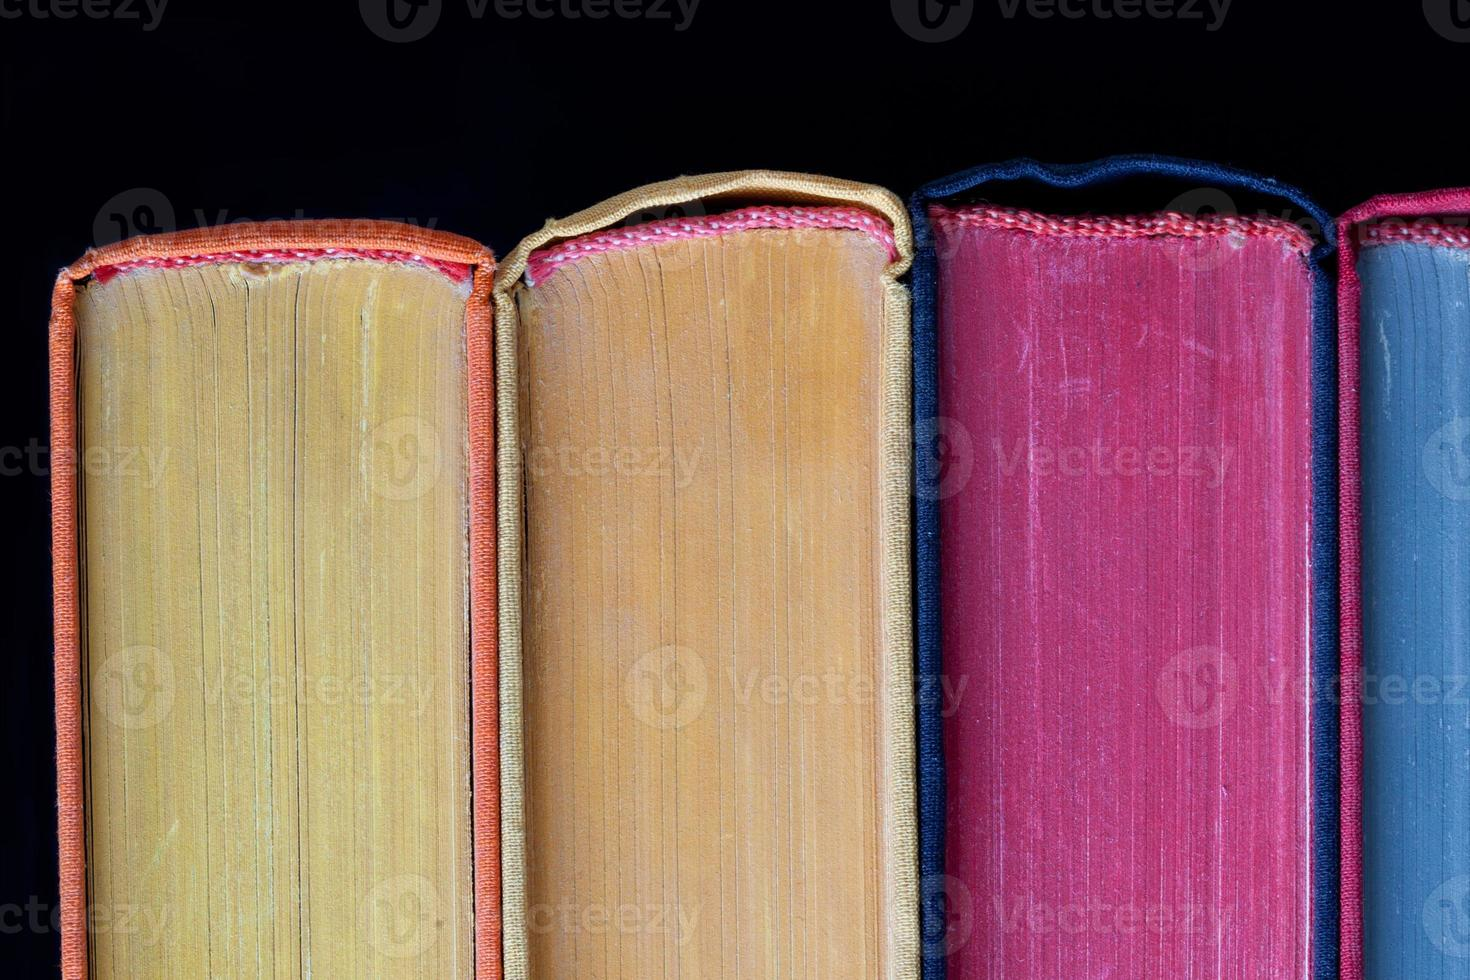 Colorful books. hard cover. Black background. Isolated photo